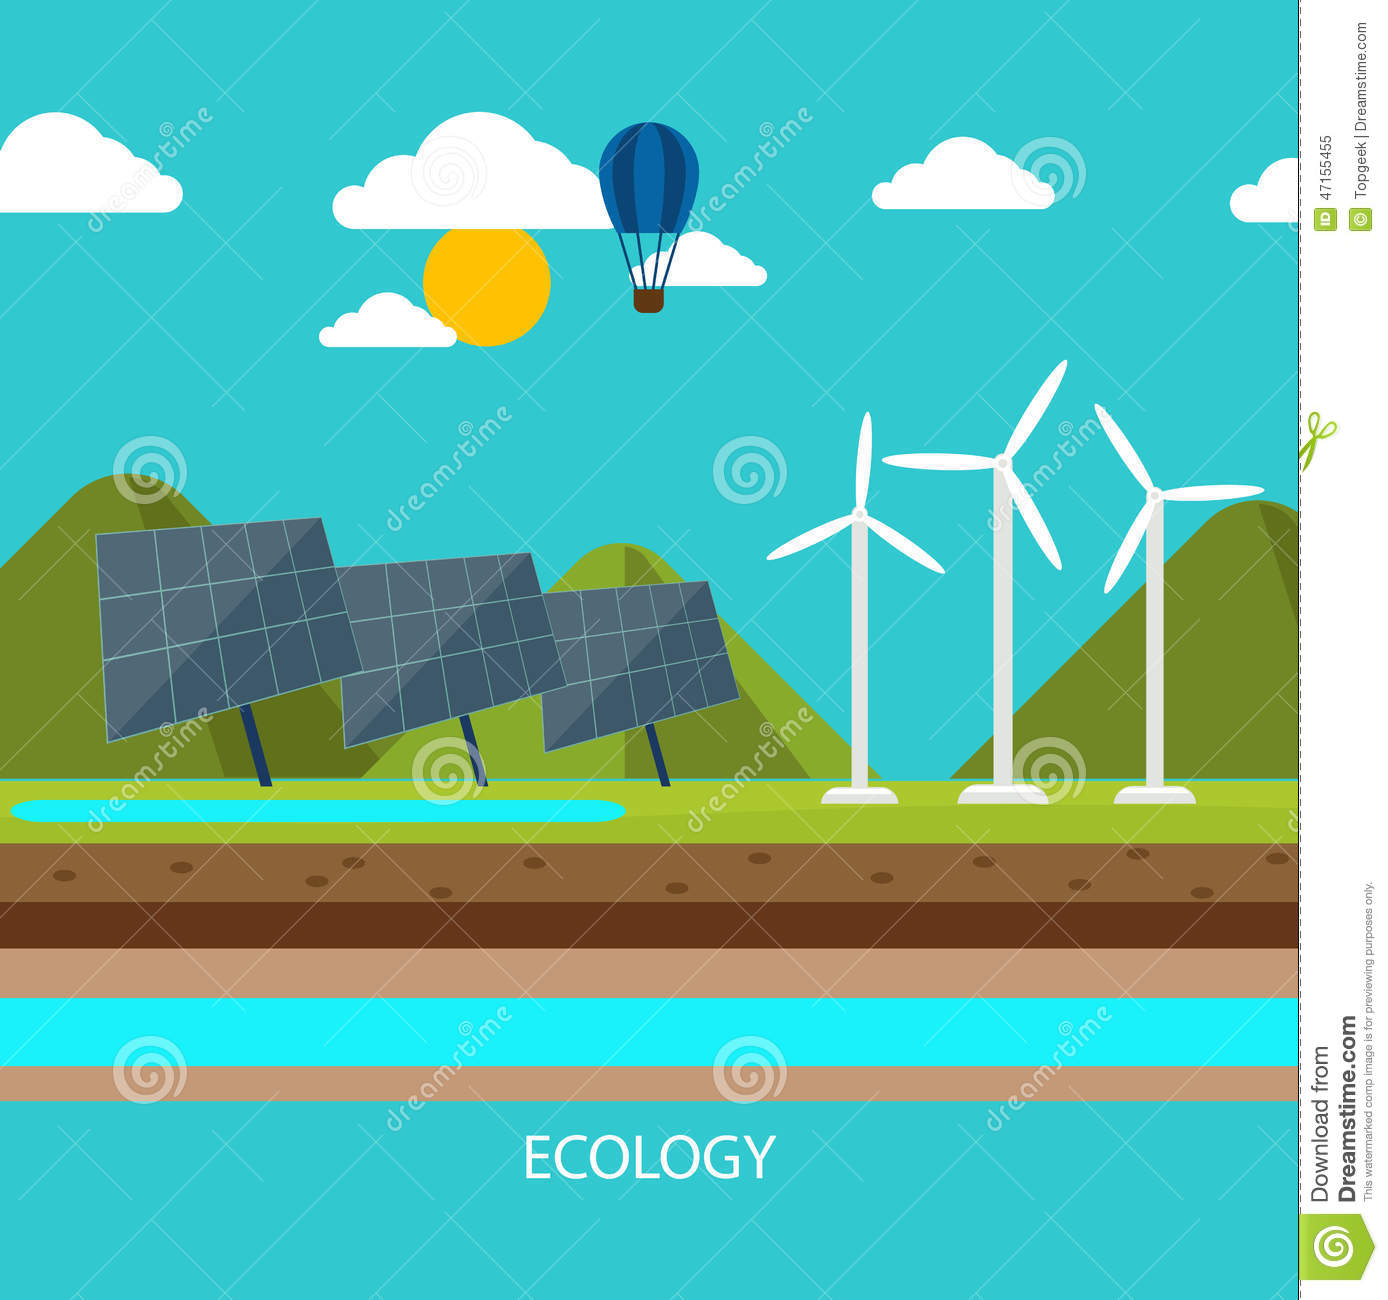 Renewable Energy Like Hydro, Solar And Wind Power Stock Vector - Image ...